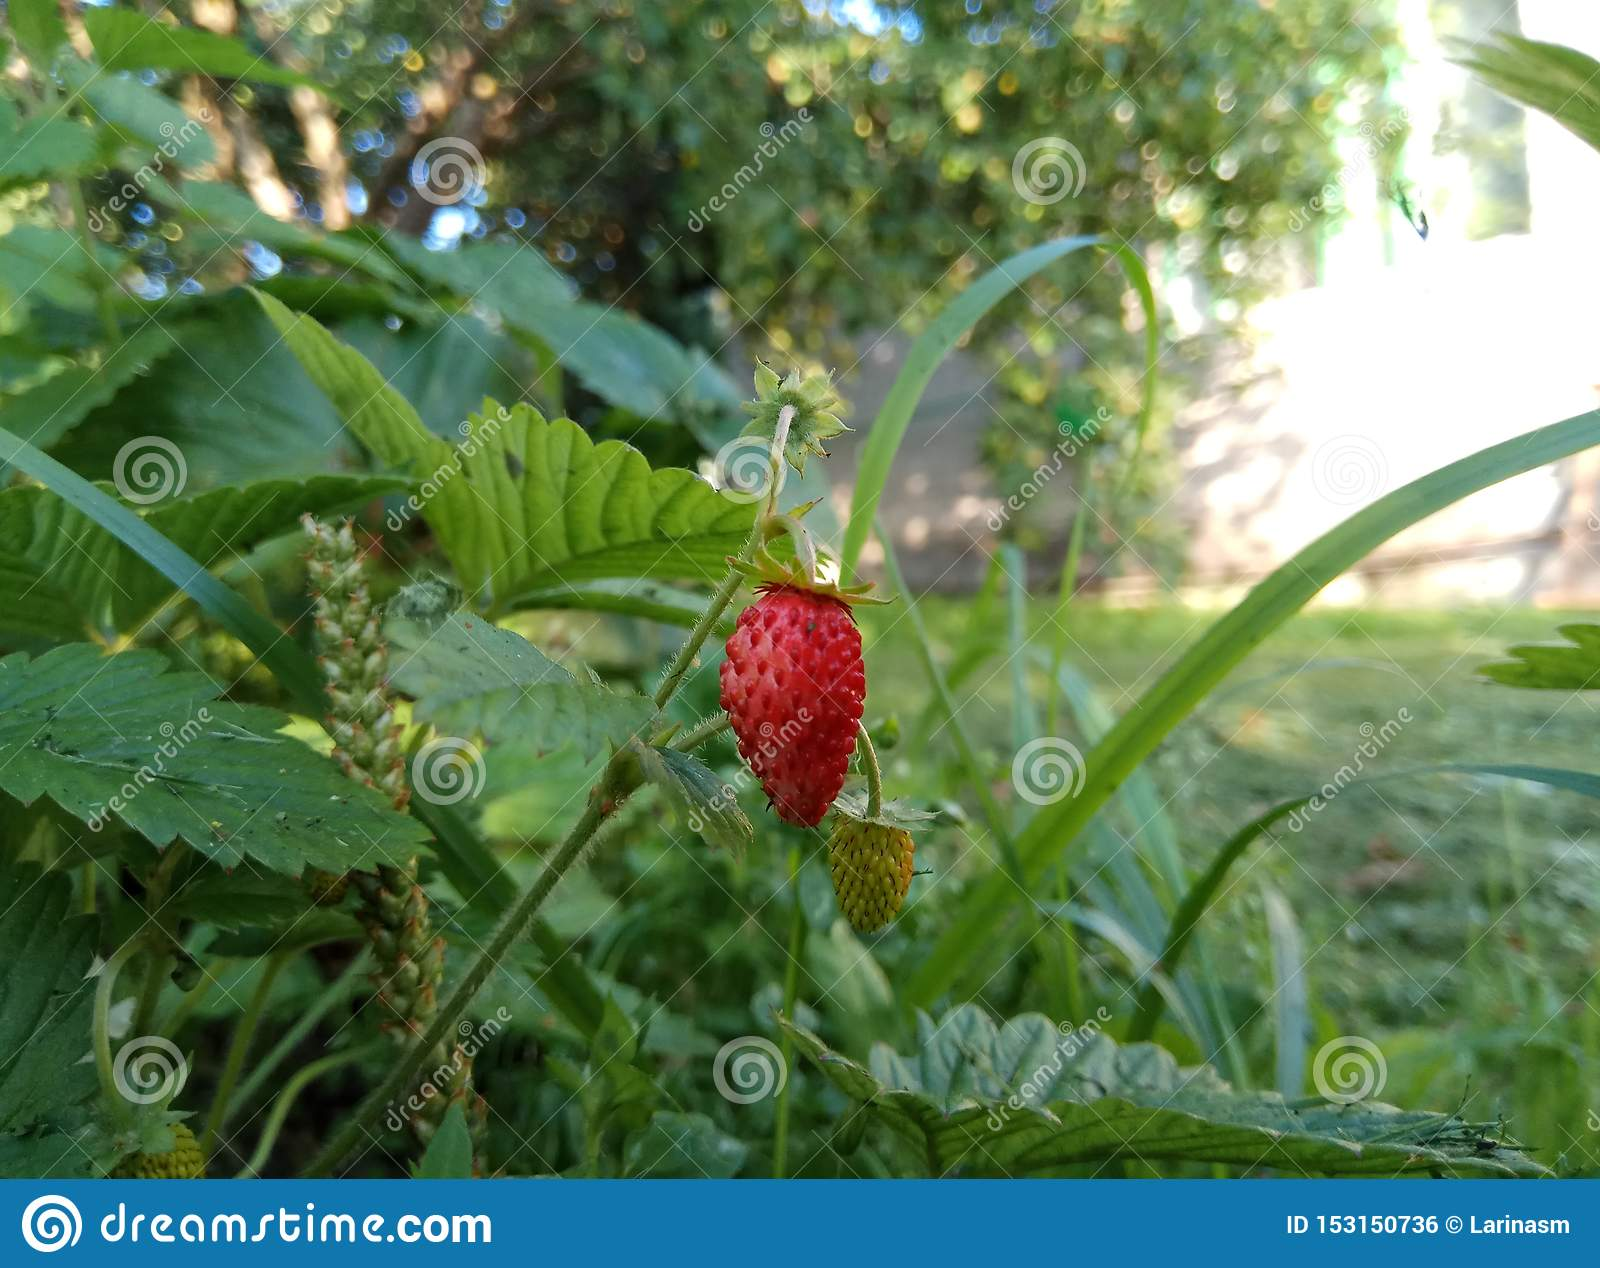 Fresh juicy bright red strawberry berry on autumn grass under sunlight natural background Wallpaper macro